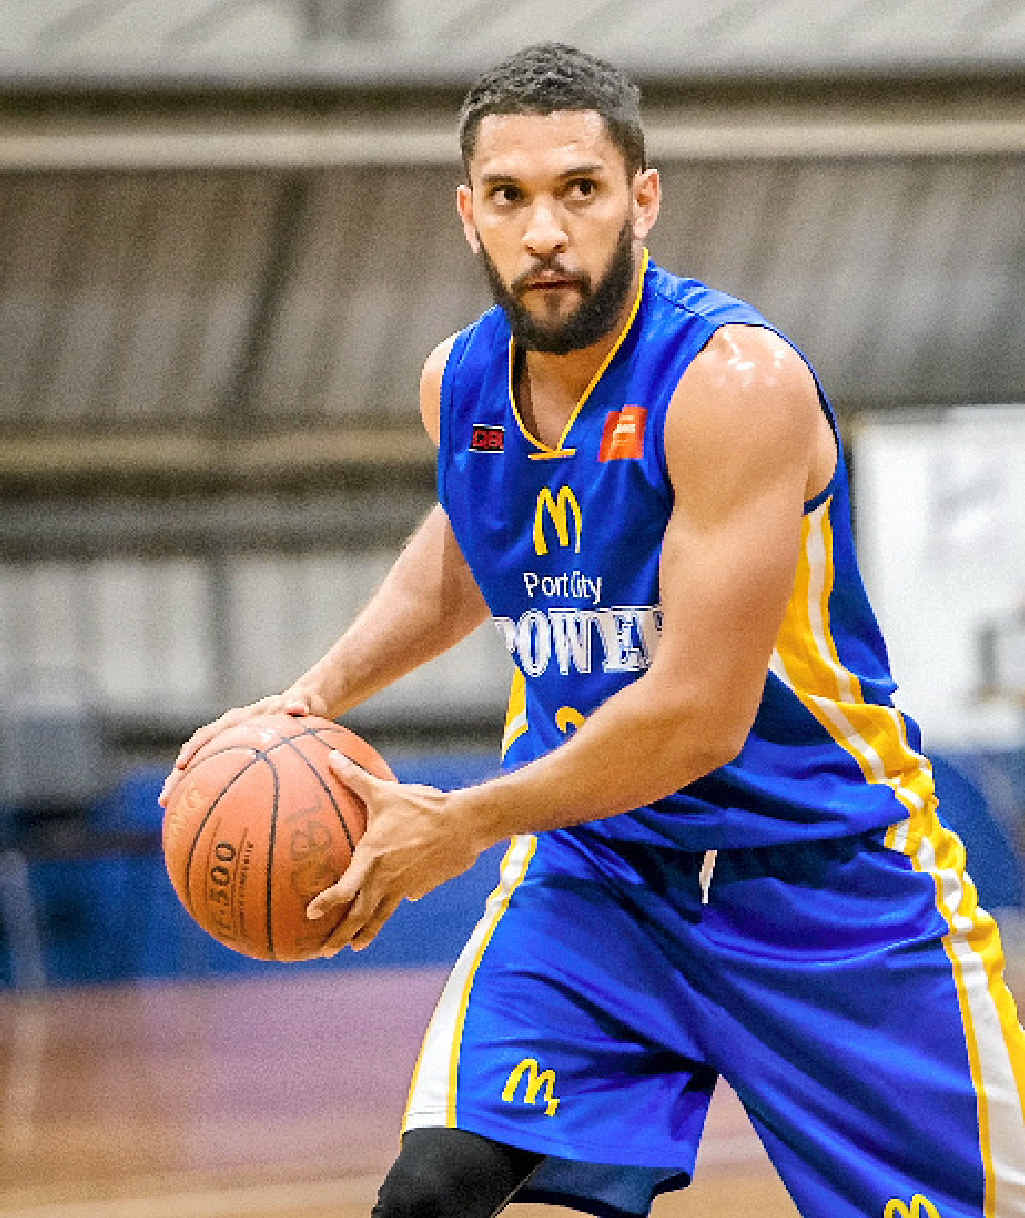 POWERING UP: Michael Cedar played a pre-season debut match for the Port City Power, pipping his brothers Mackay team 87-80.